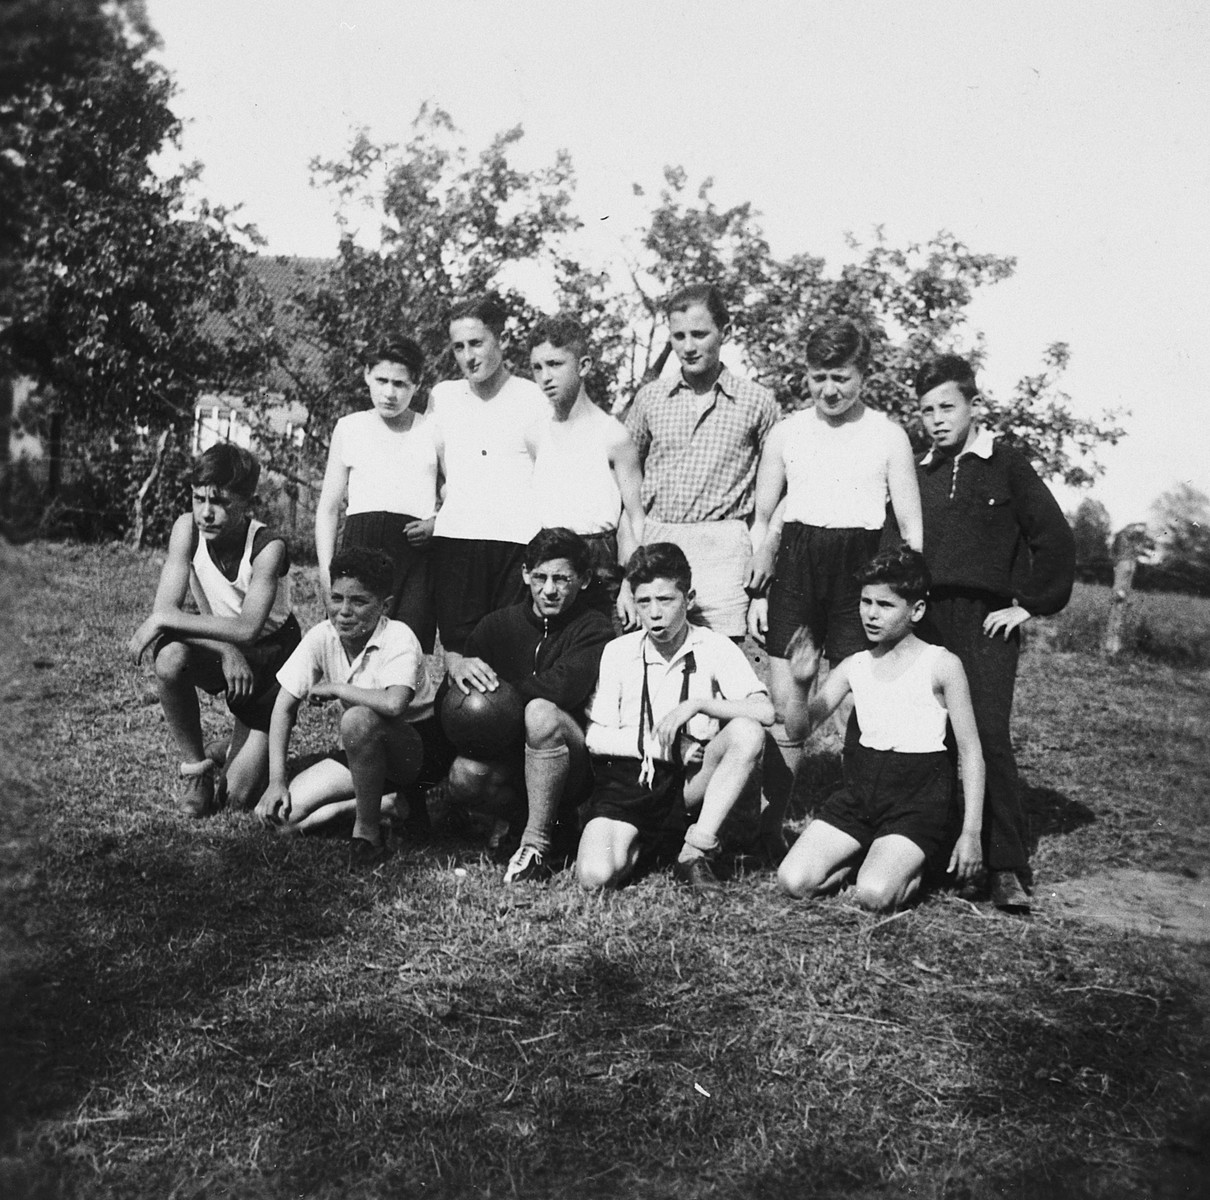 Portrait of a Jewish soccer team in Koenigsberg, Germany.  Among those pictured is Hans Garfunkel, in the dark shirt (front row, center).